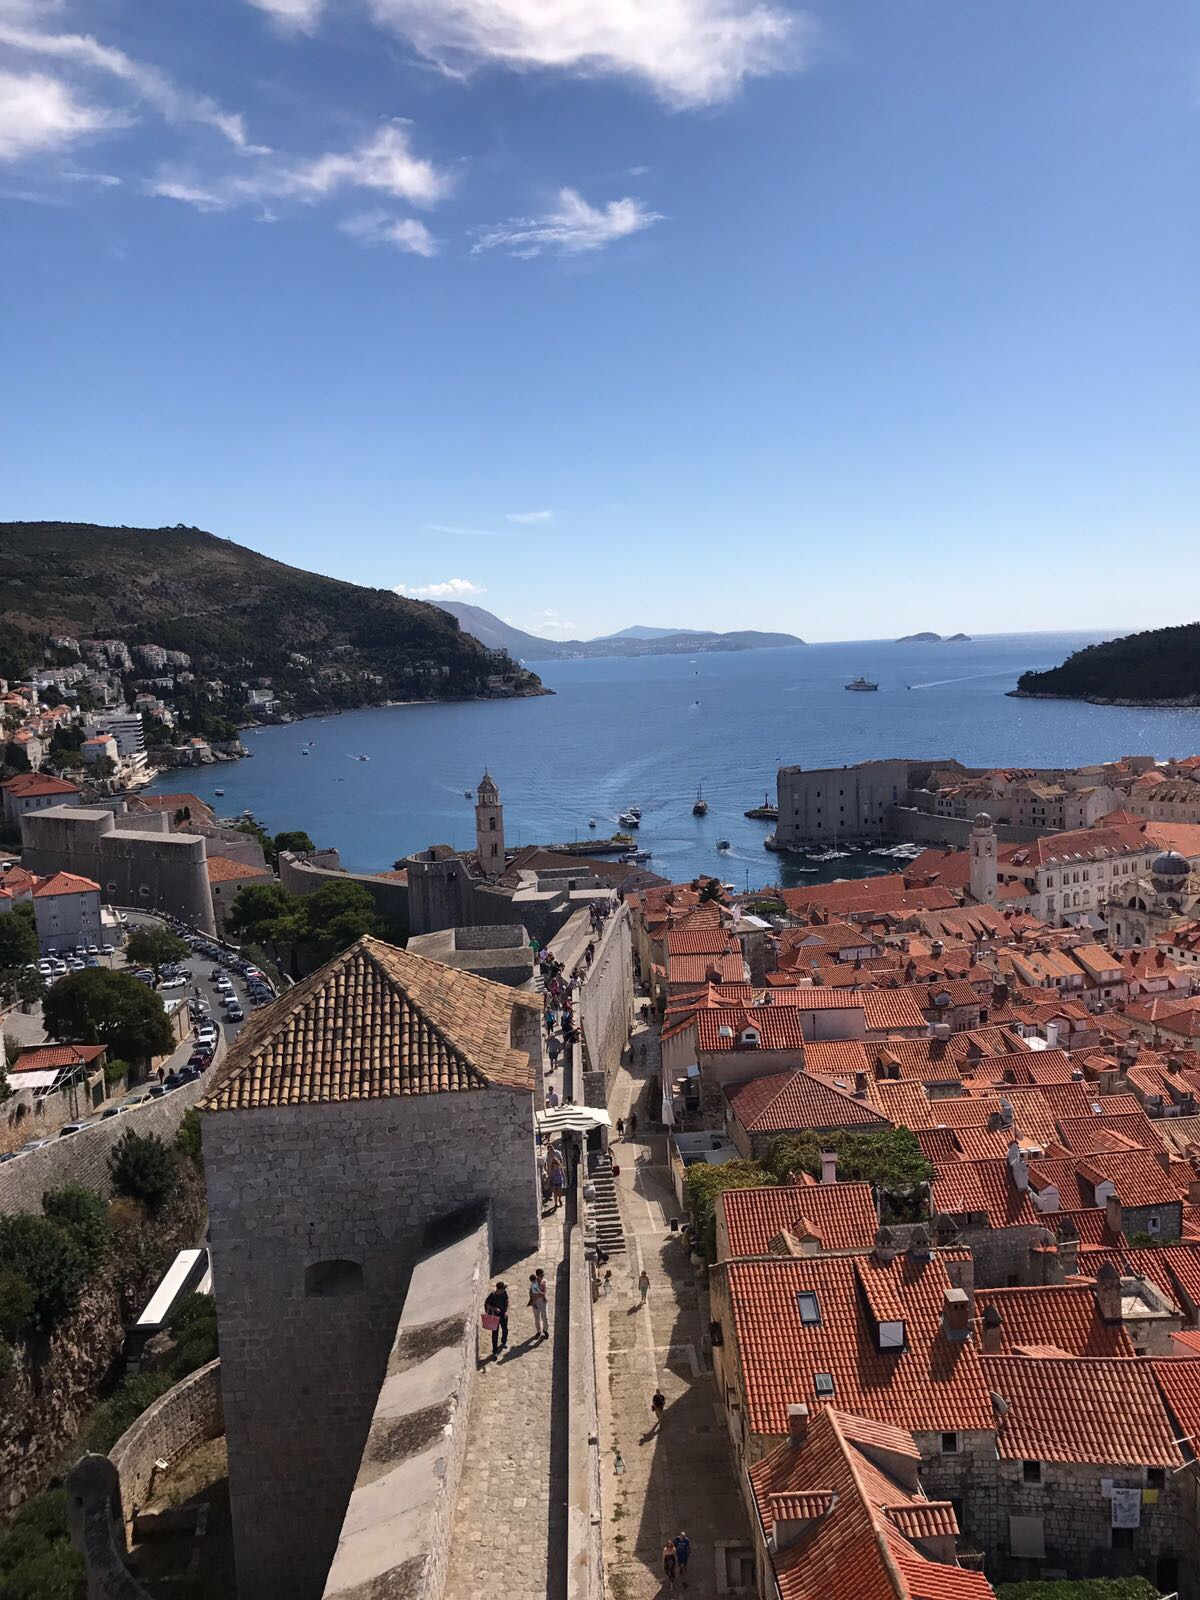 King's Landing Game of thrones filming location in Dubrovnik Croatia